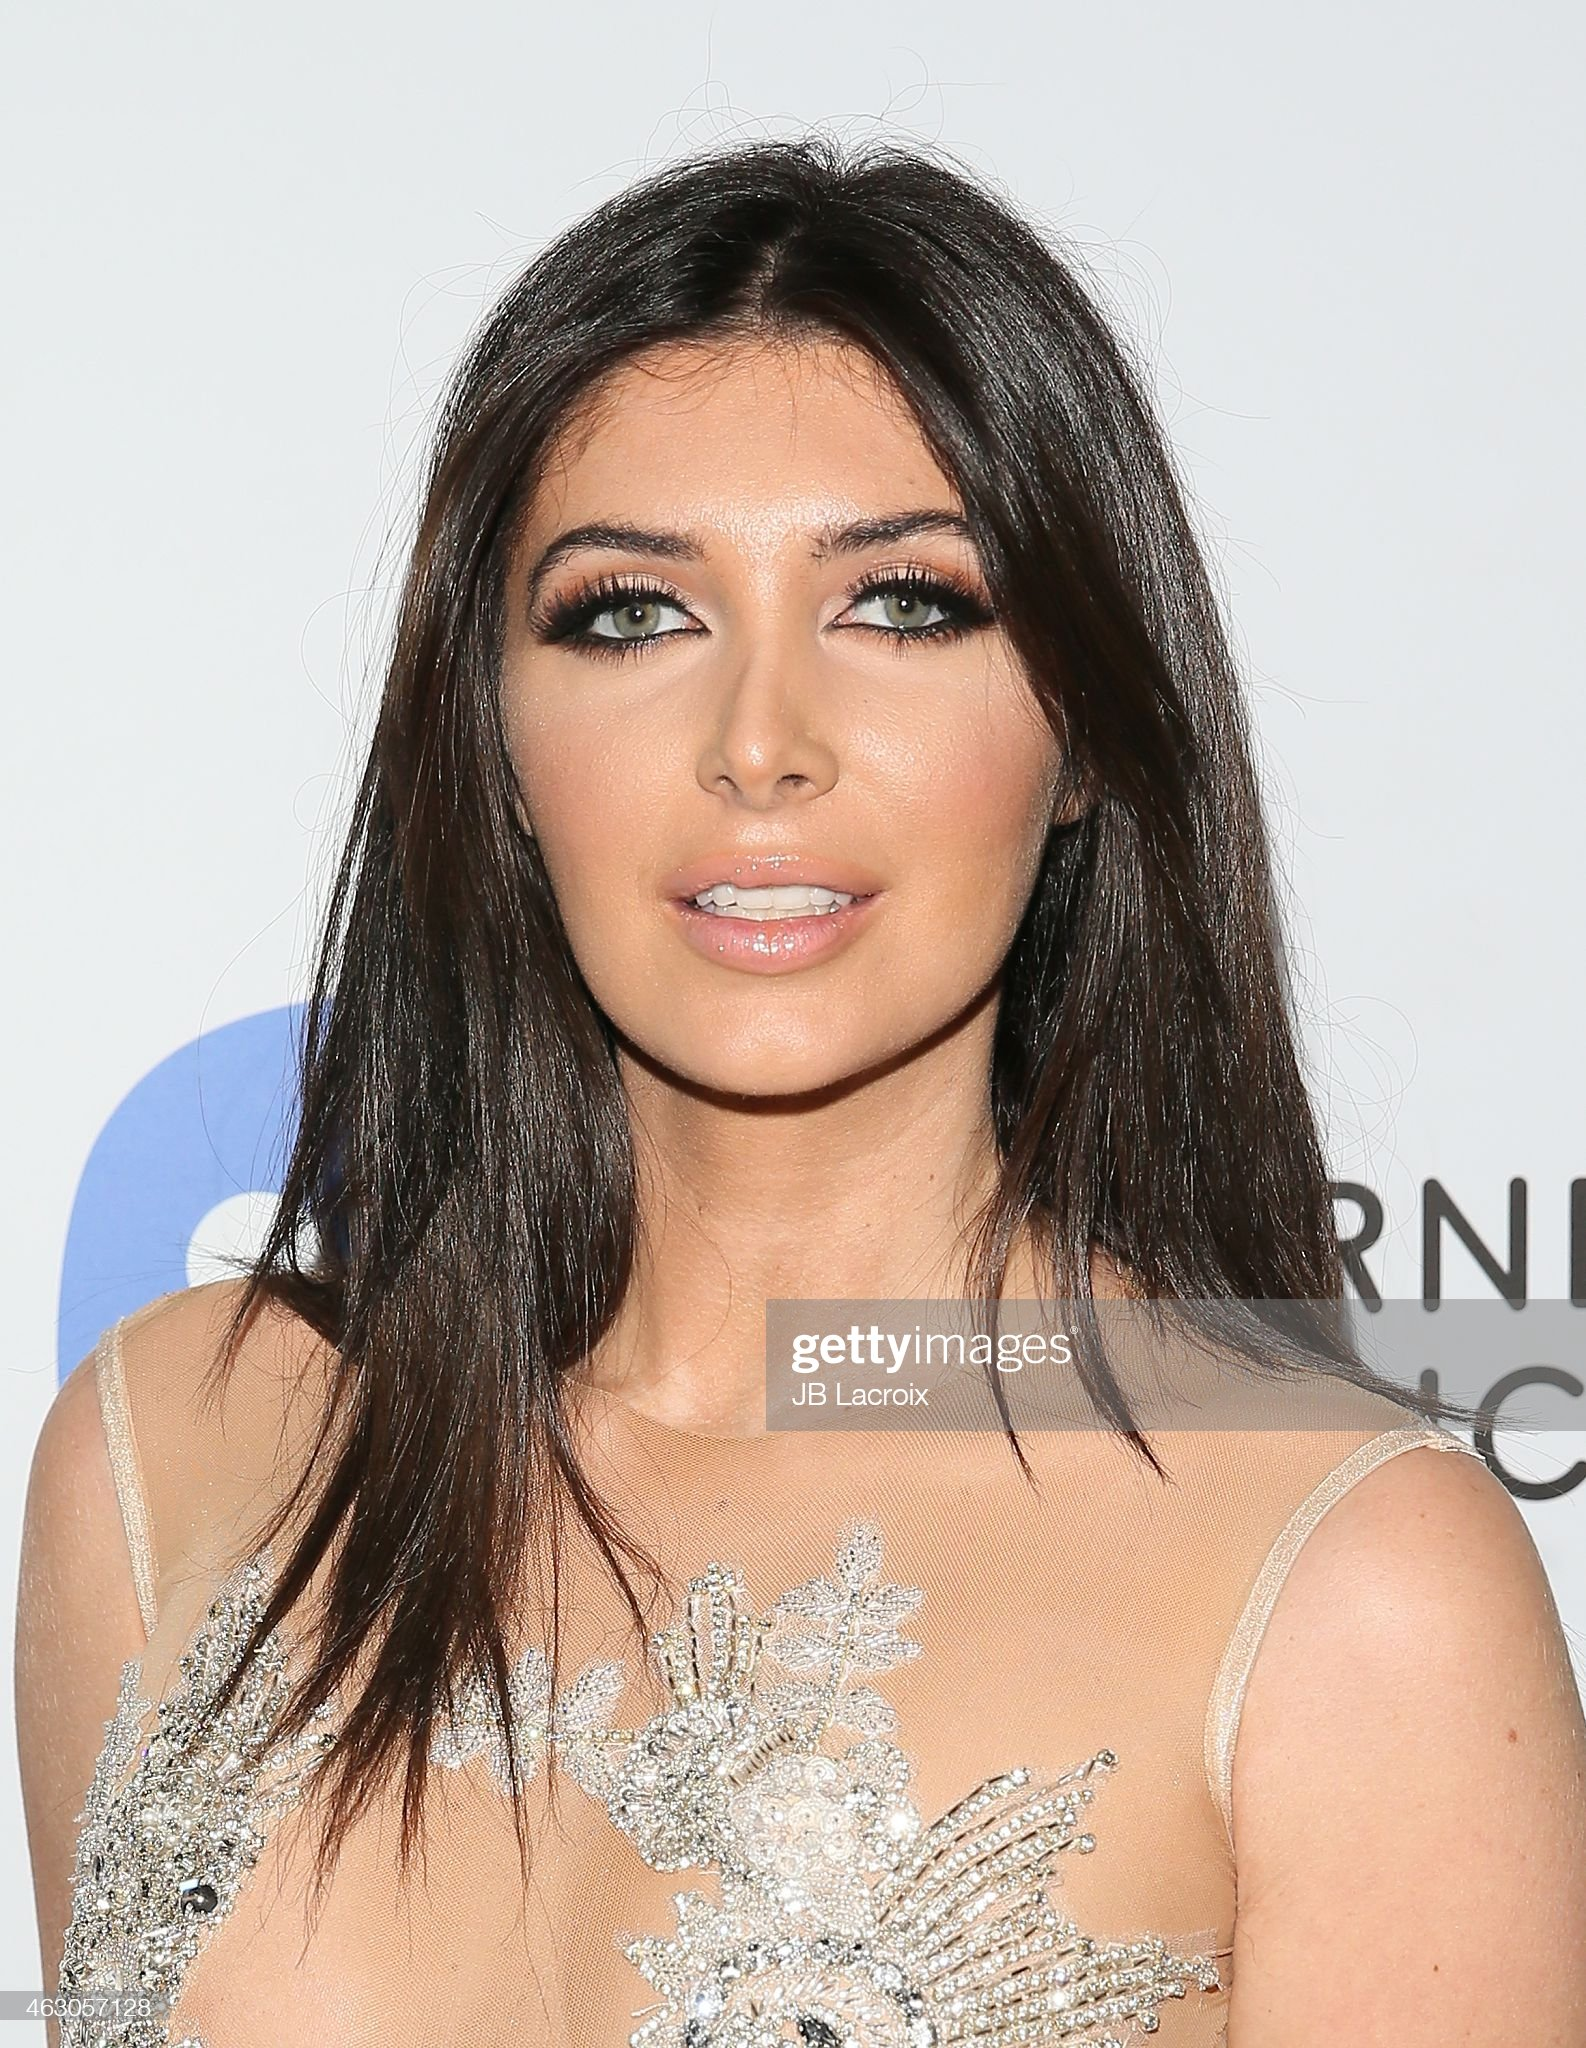 COLOR DE OJOS (clasificación y debate de personas famosas) - Página 11 Brittny-gastineau-attends-the-warner-music-group-annual-grammy-at-picture-id463057128?s=2048x2048